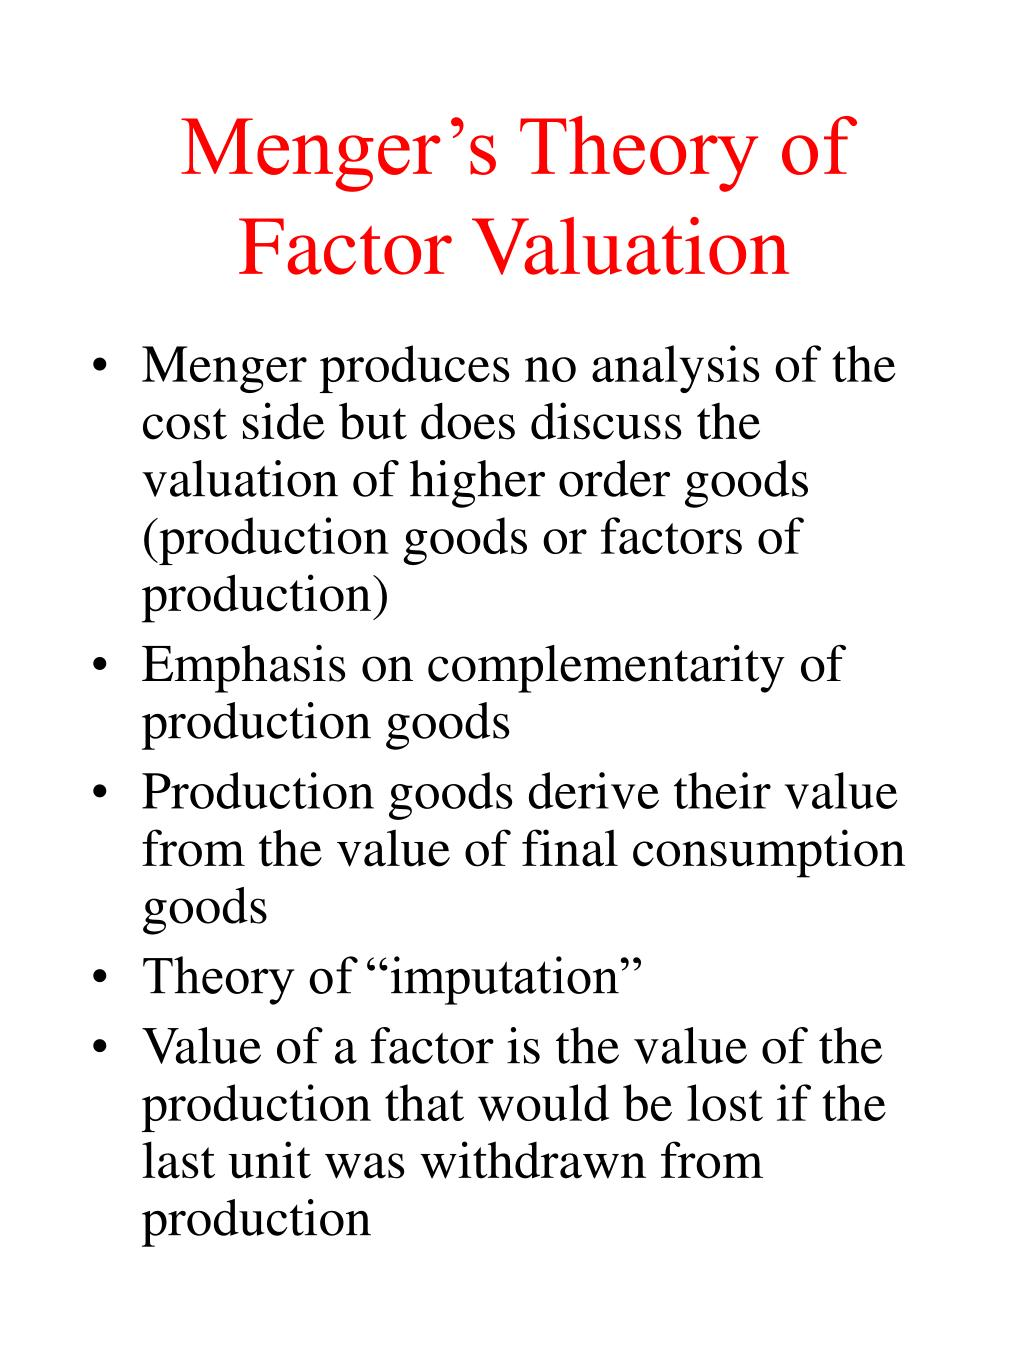 Menger's Theory of Factor Valuation